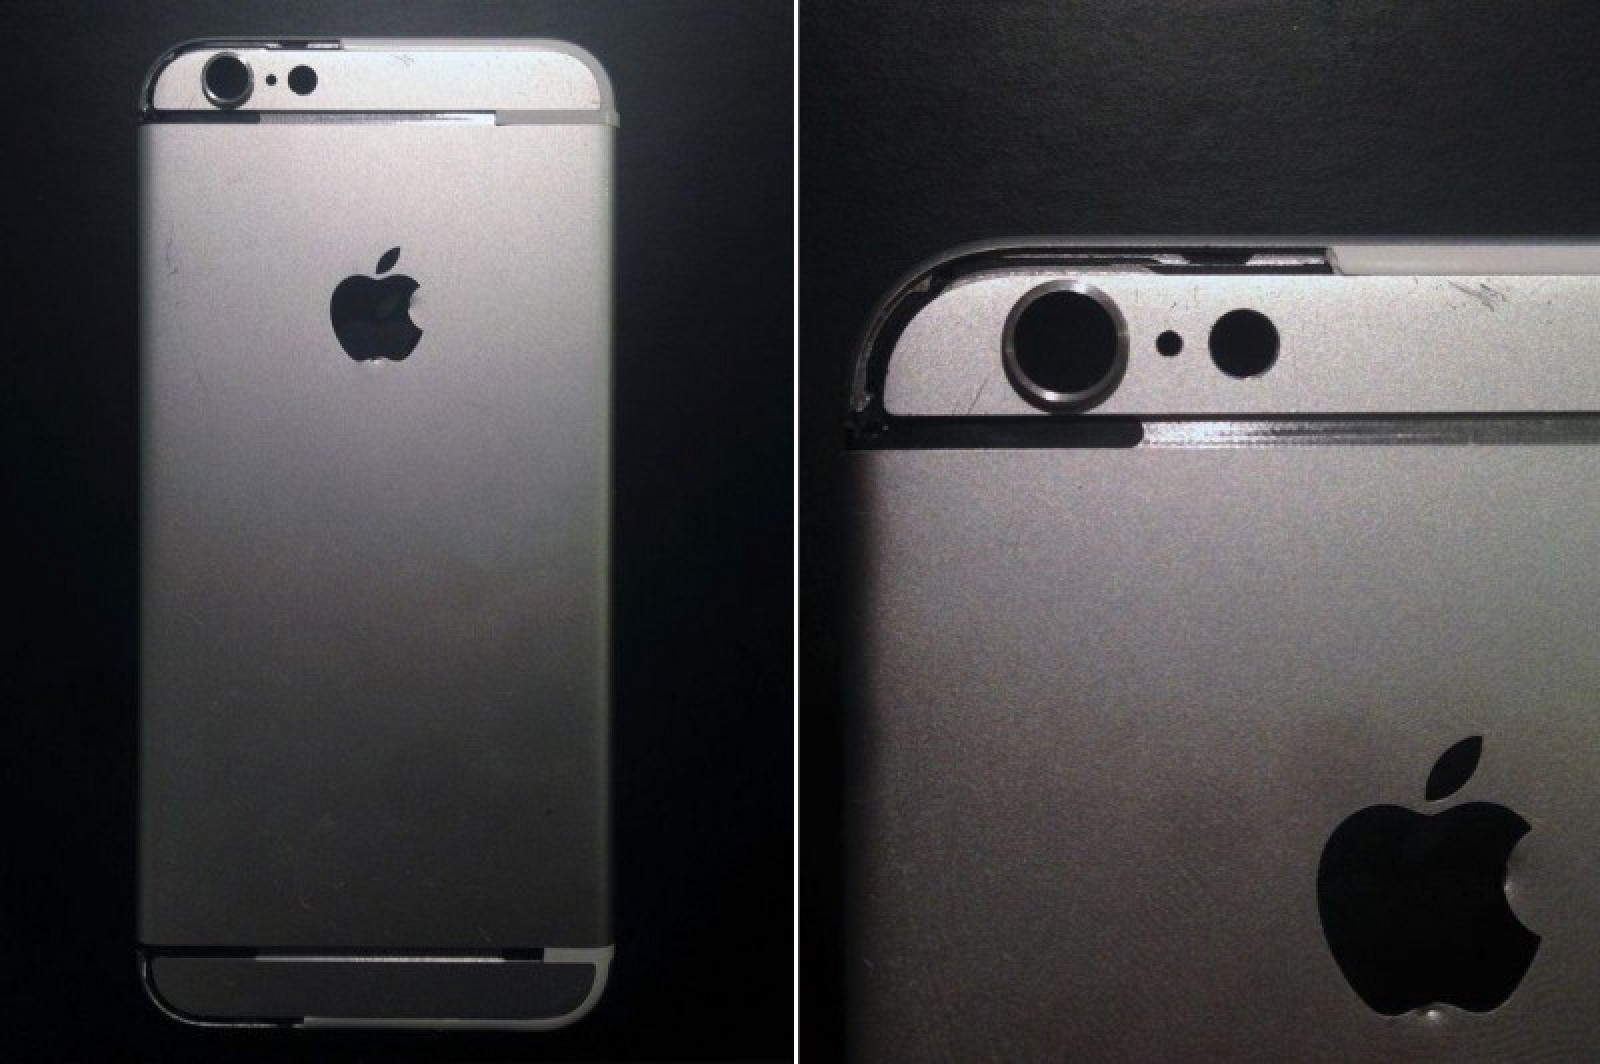 timeless design 25907 cd1c9 Additional Photos of Purported Silver iPhone 6 Rear Shell Surface ...